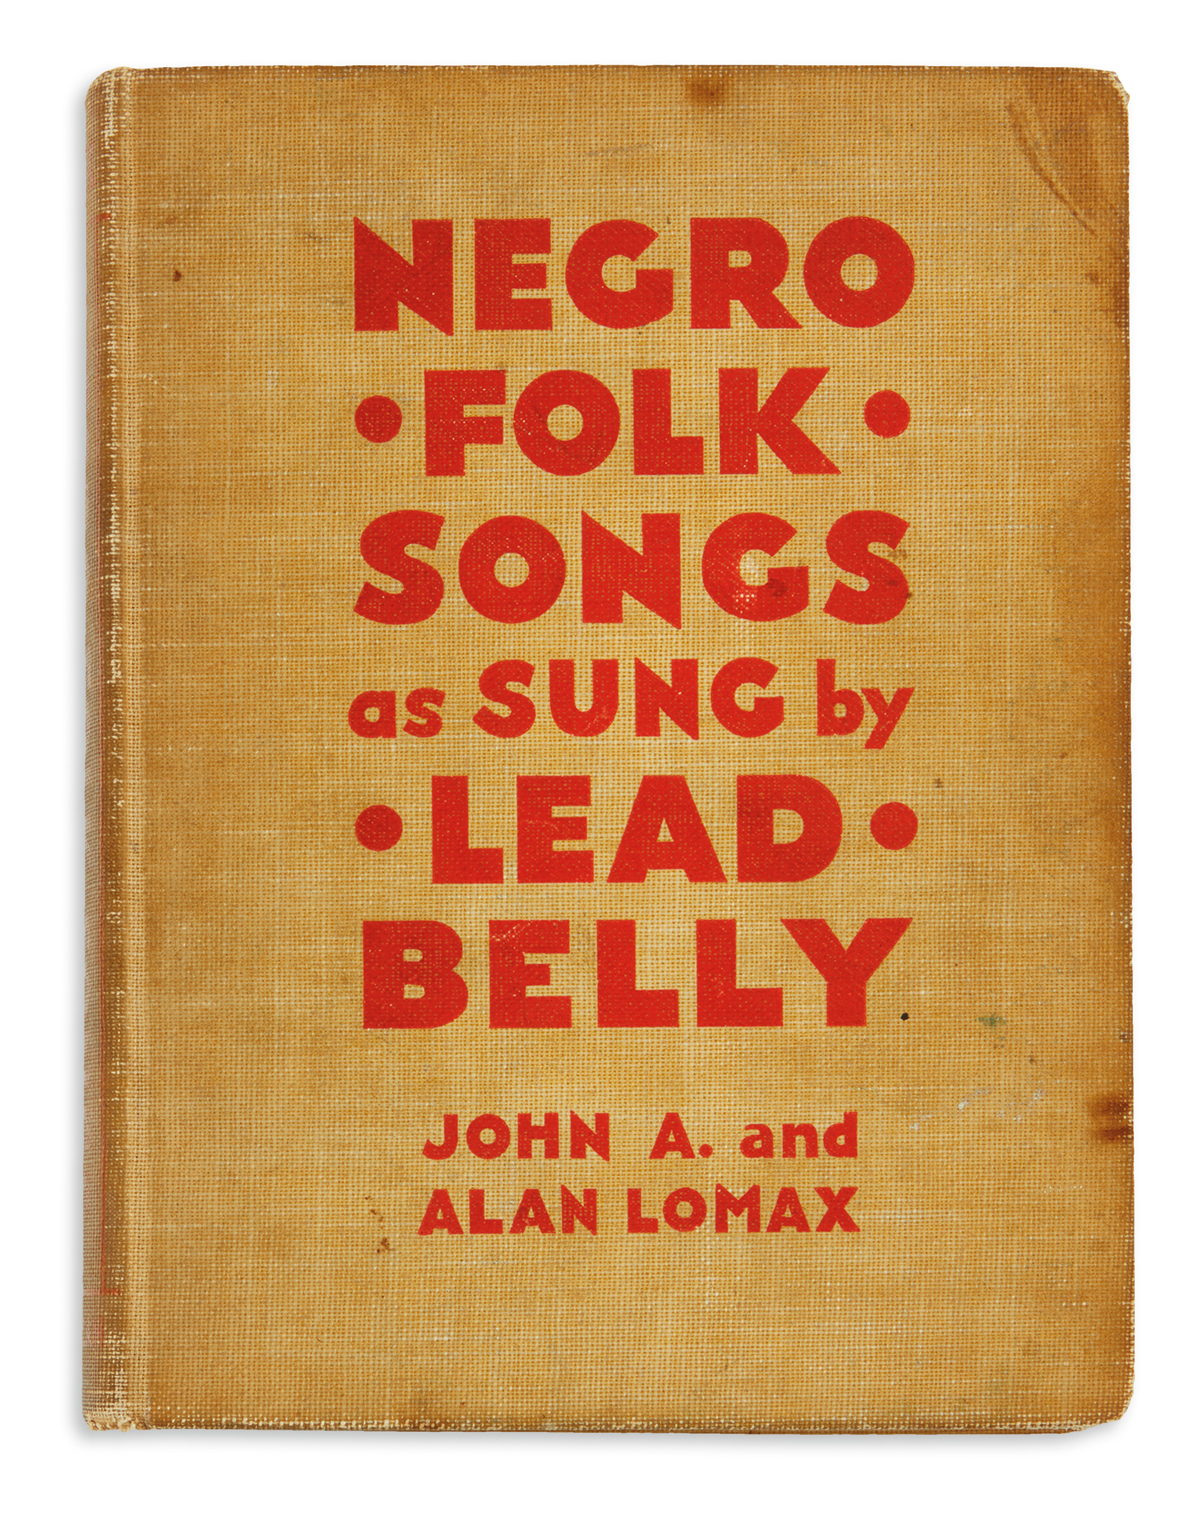 (MUSIC.) Lomax, John A. and Alan; editors. Negro Folk Songs as Sung by Lead Belly.